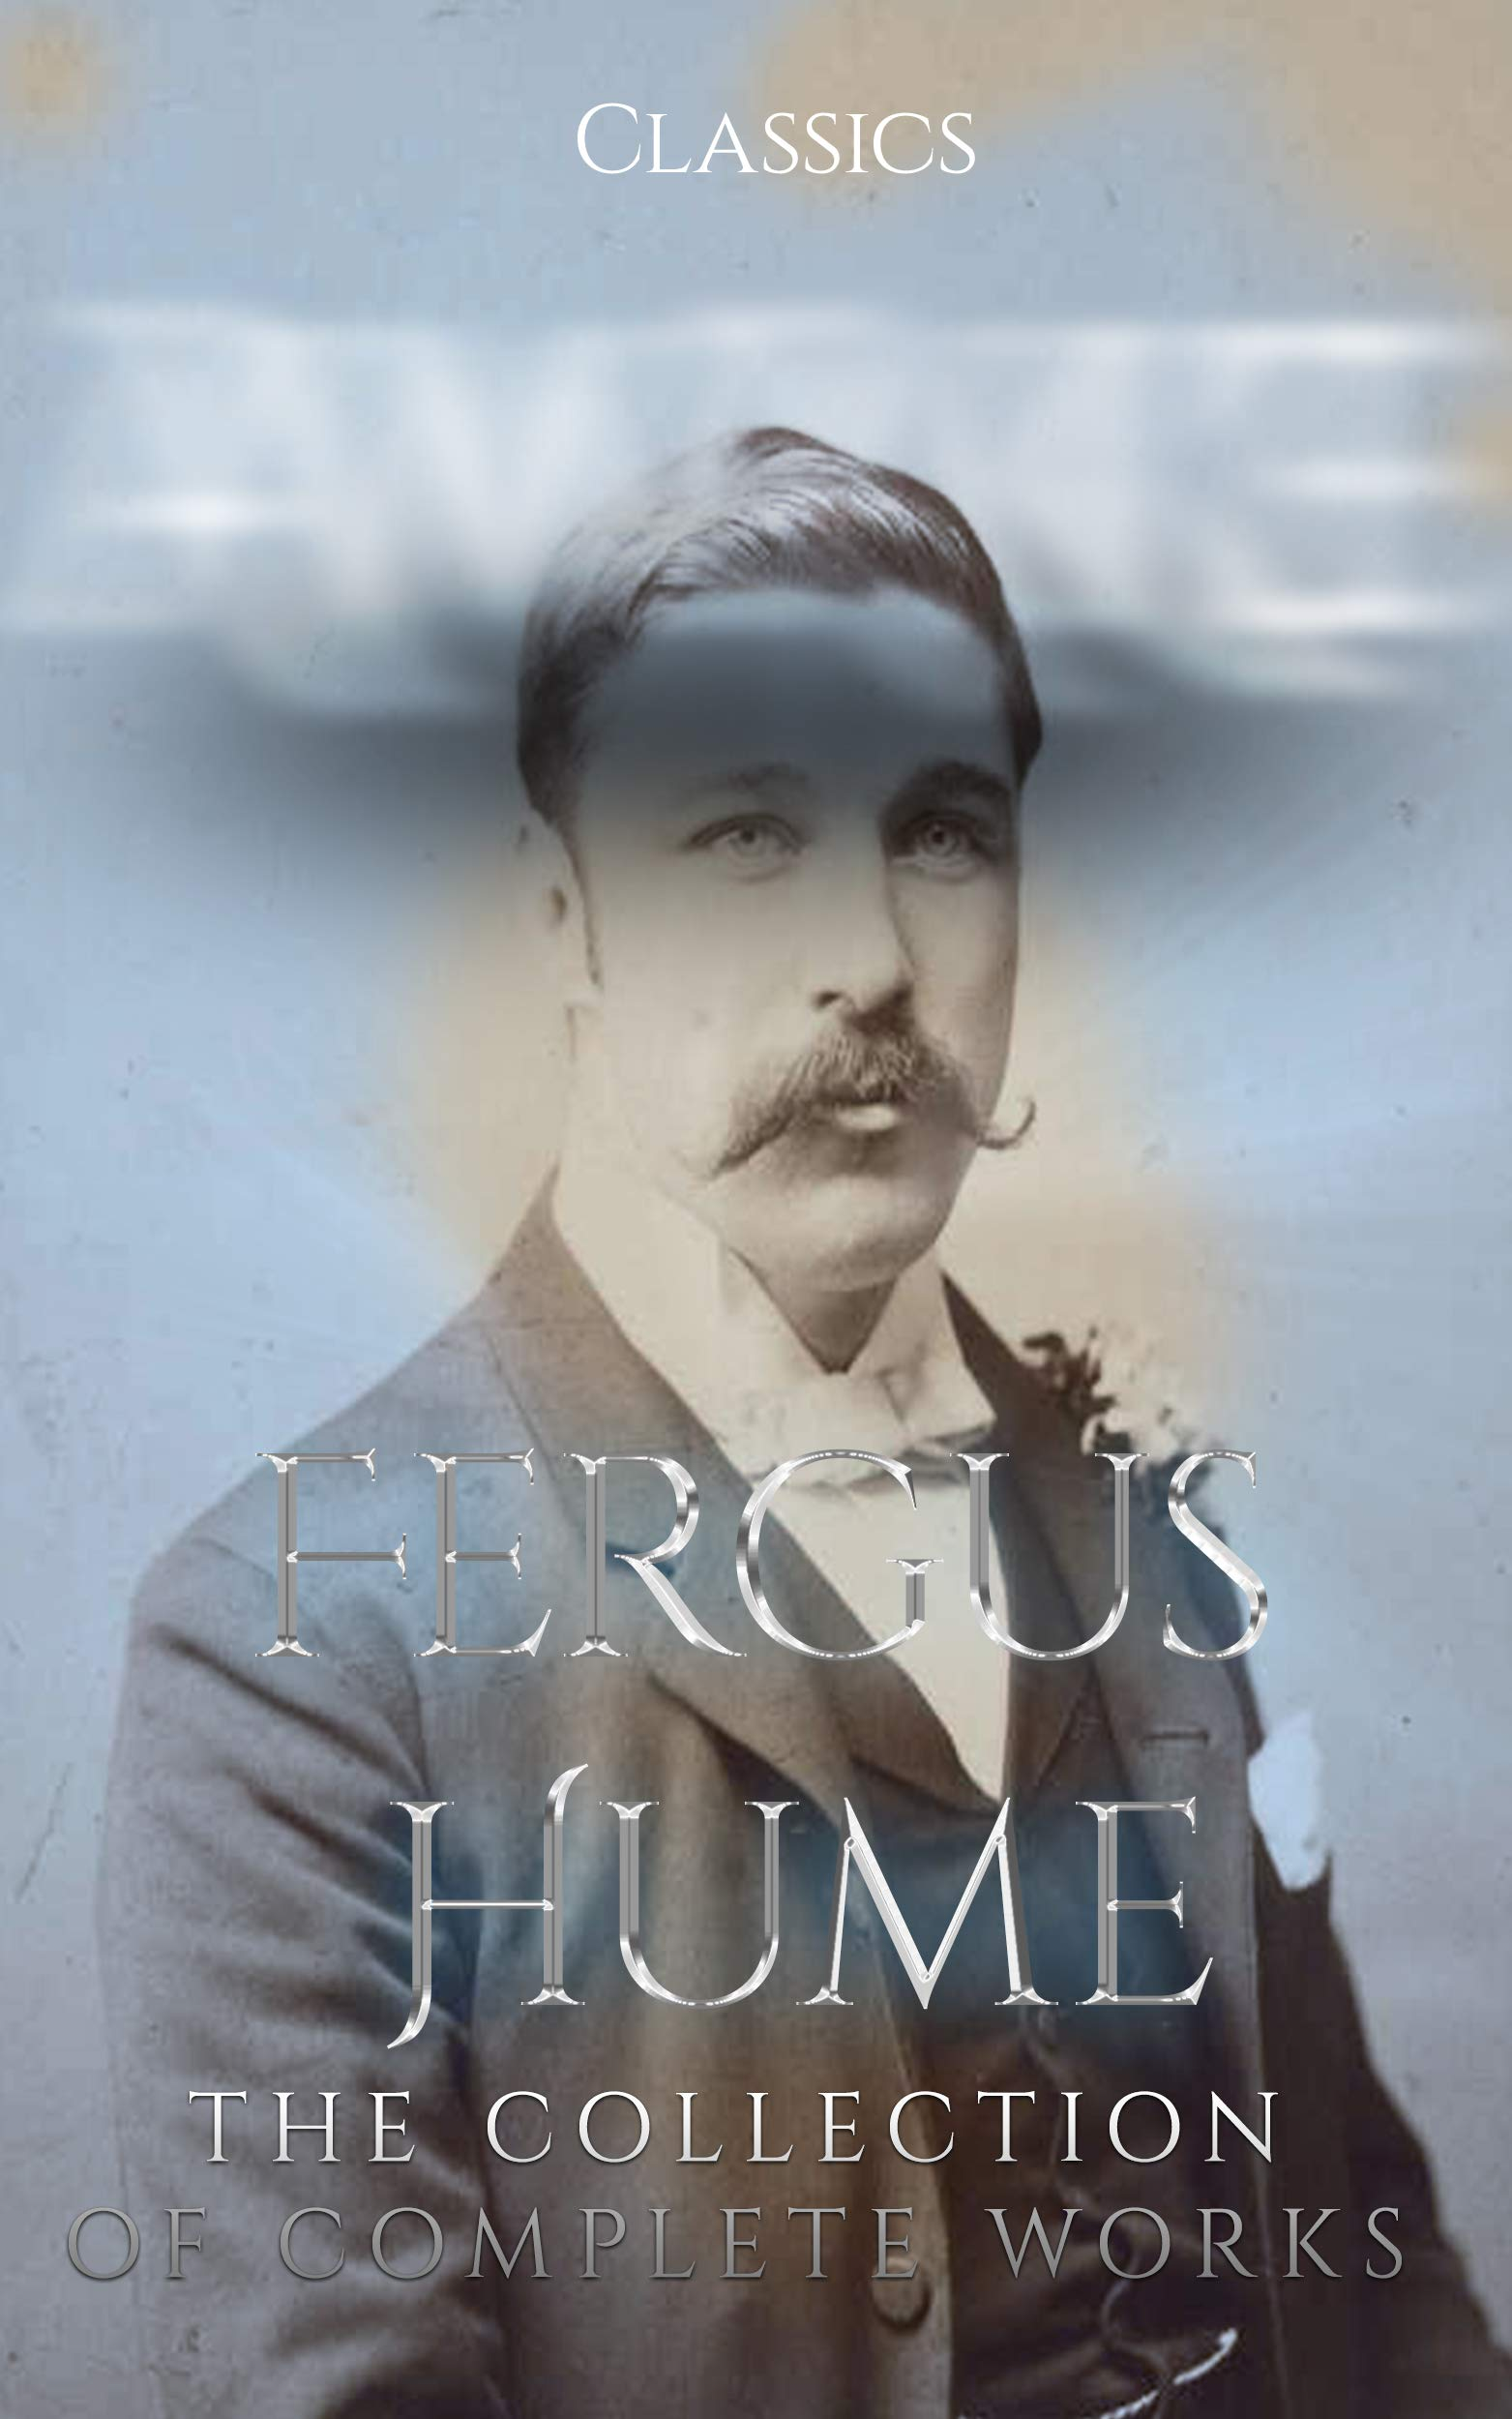 Fergus Hume: The Collection of Complete Works (Annotated): Collection Includes The Mystery of a Hansom Cab, The Bishop's Secret, The Secret Passage, The Silent House, The Green Mummy, And More